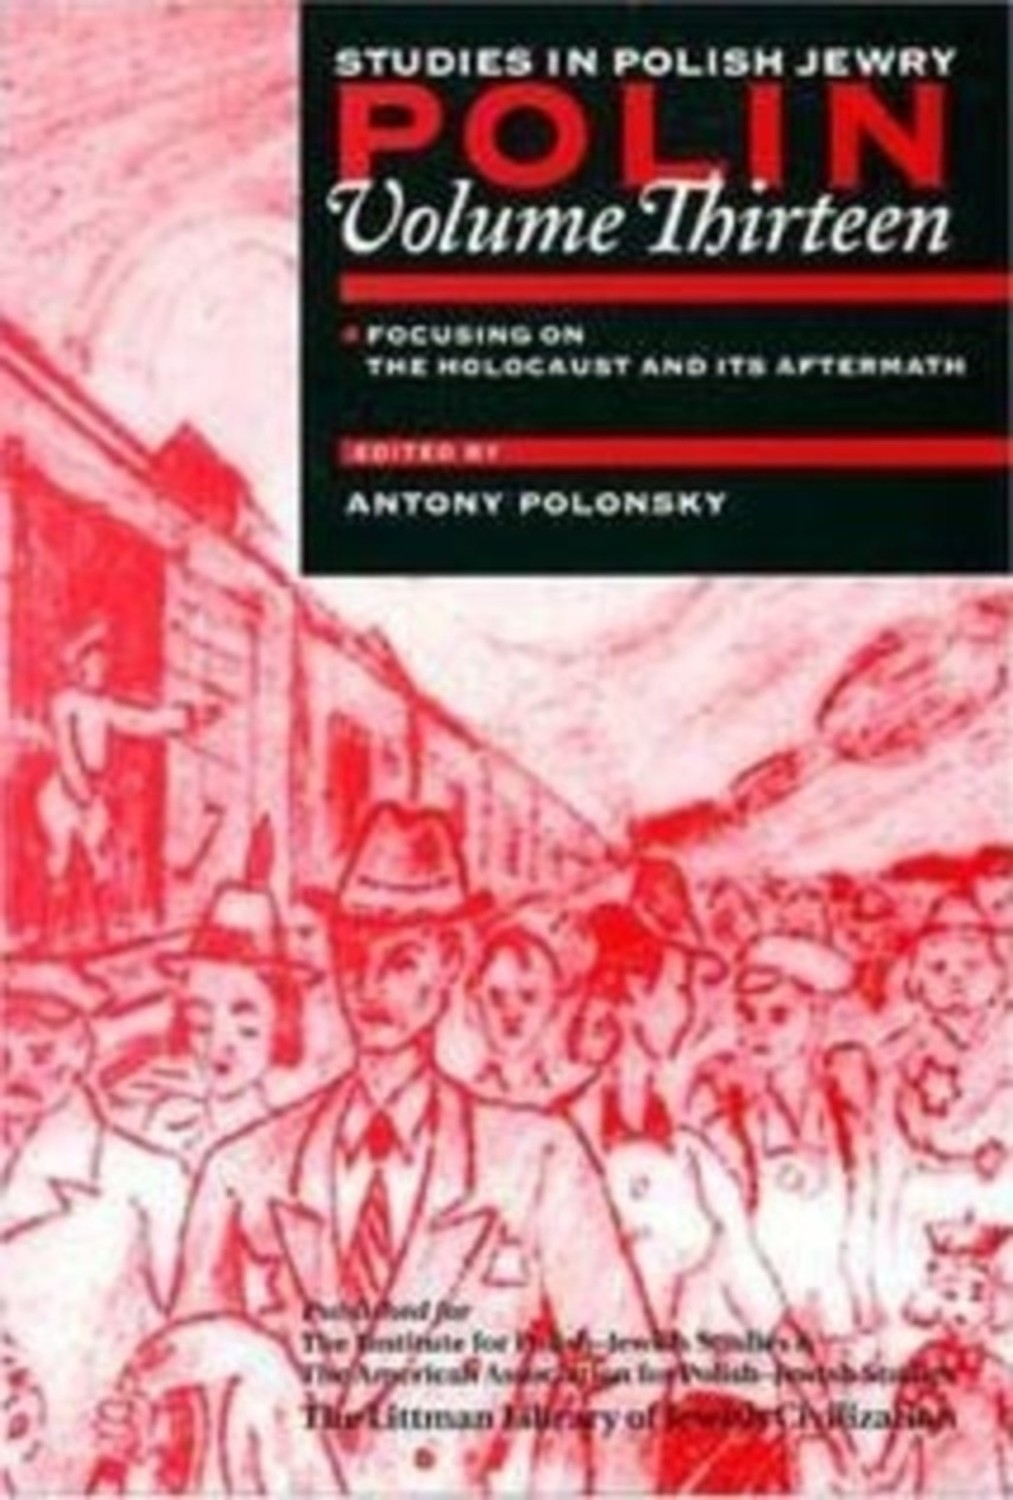 The jews in poland and russia a short history liverpool polin studies in polish jewry volume 13 fandeluxe Gallery